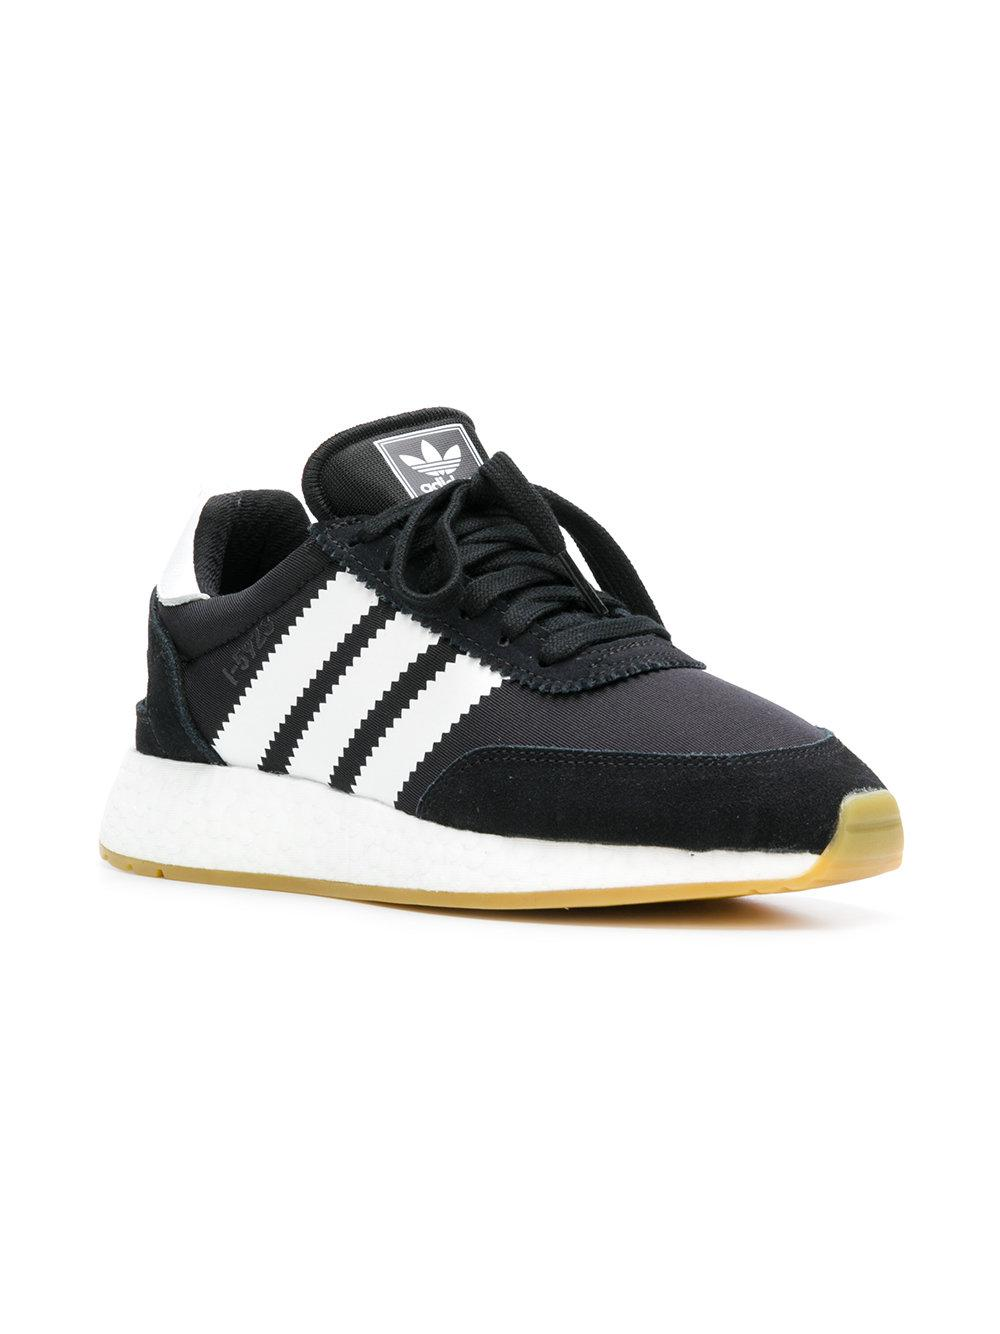 adidas Lace I-5923 Sneakers in Black